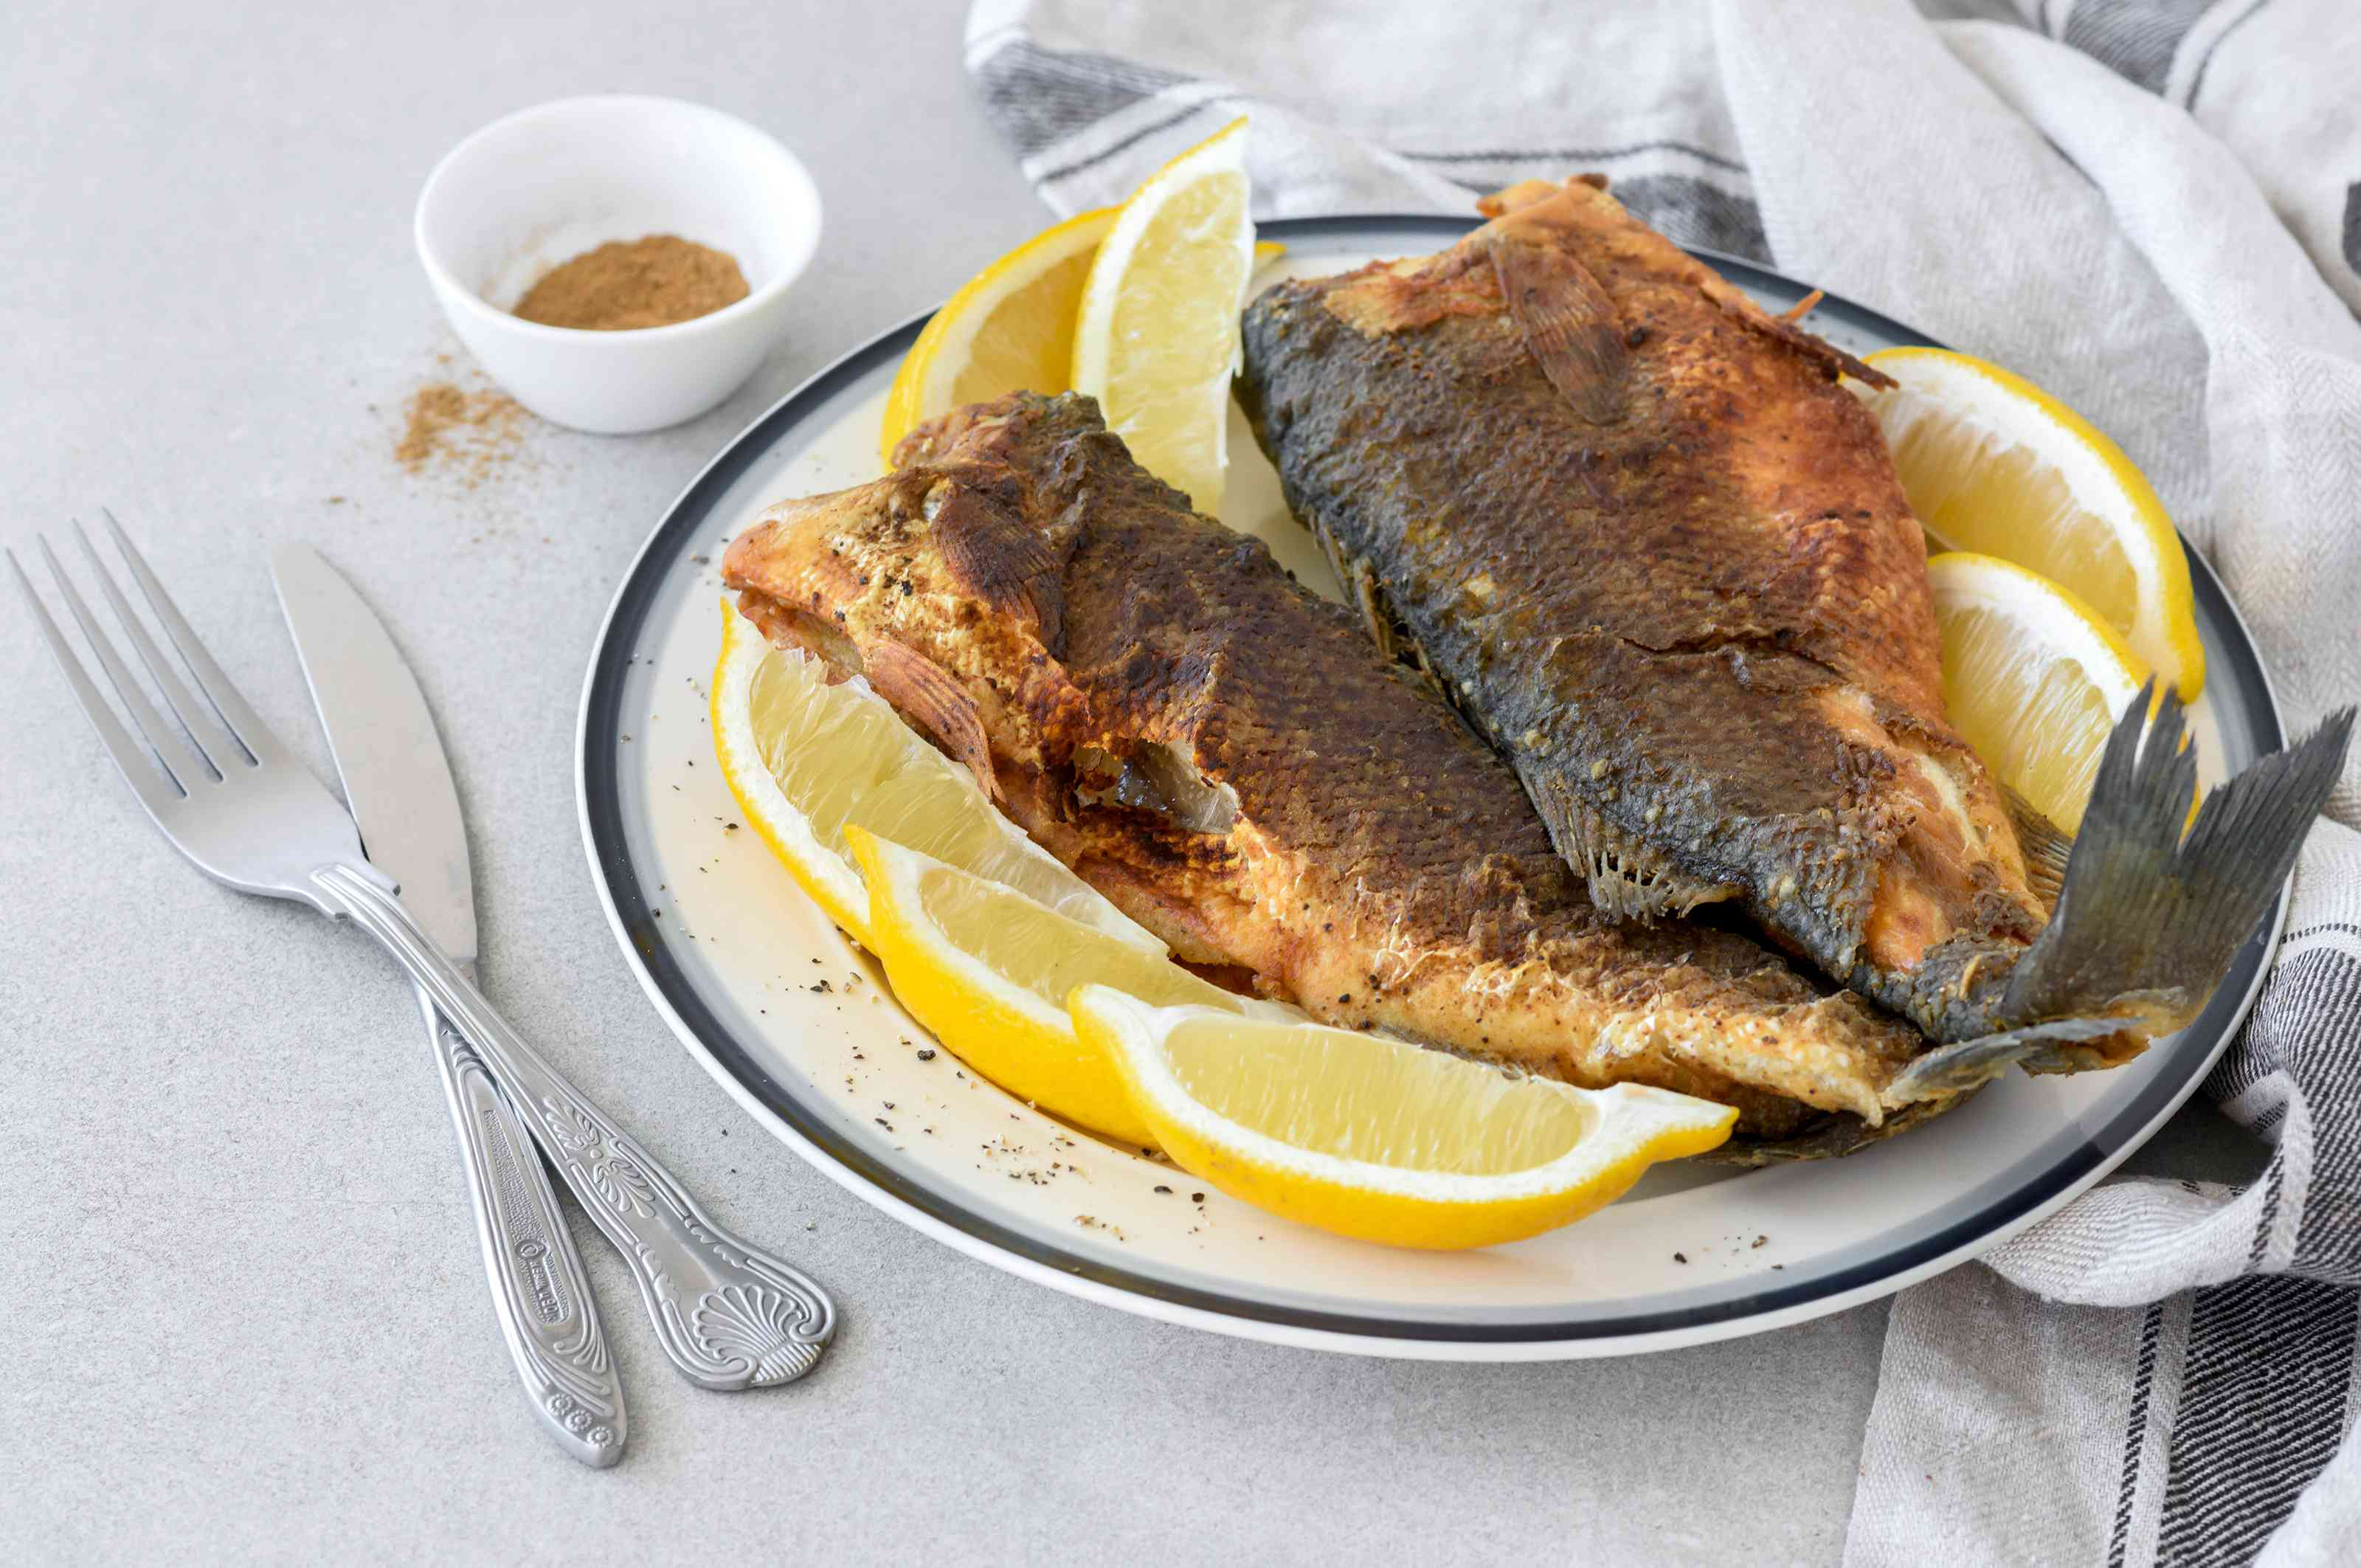 Moroccan fried whiting fish